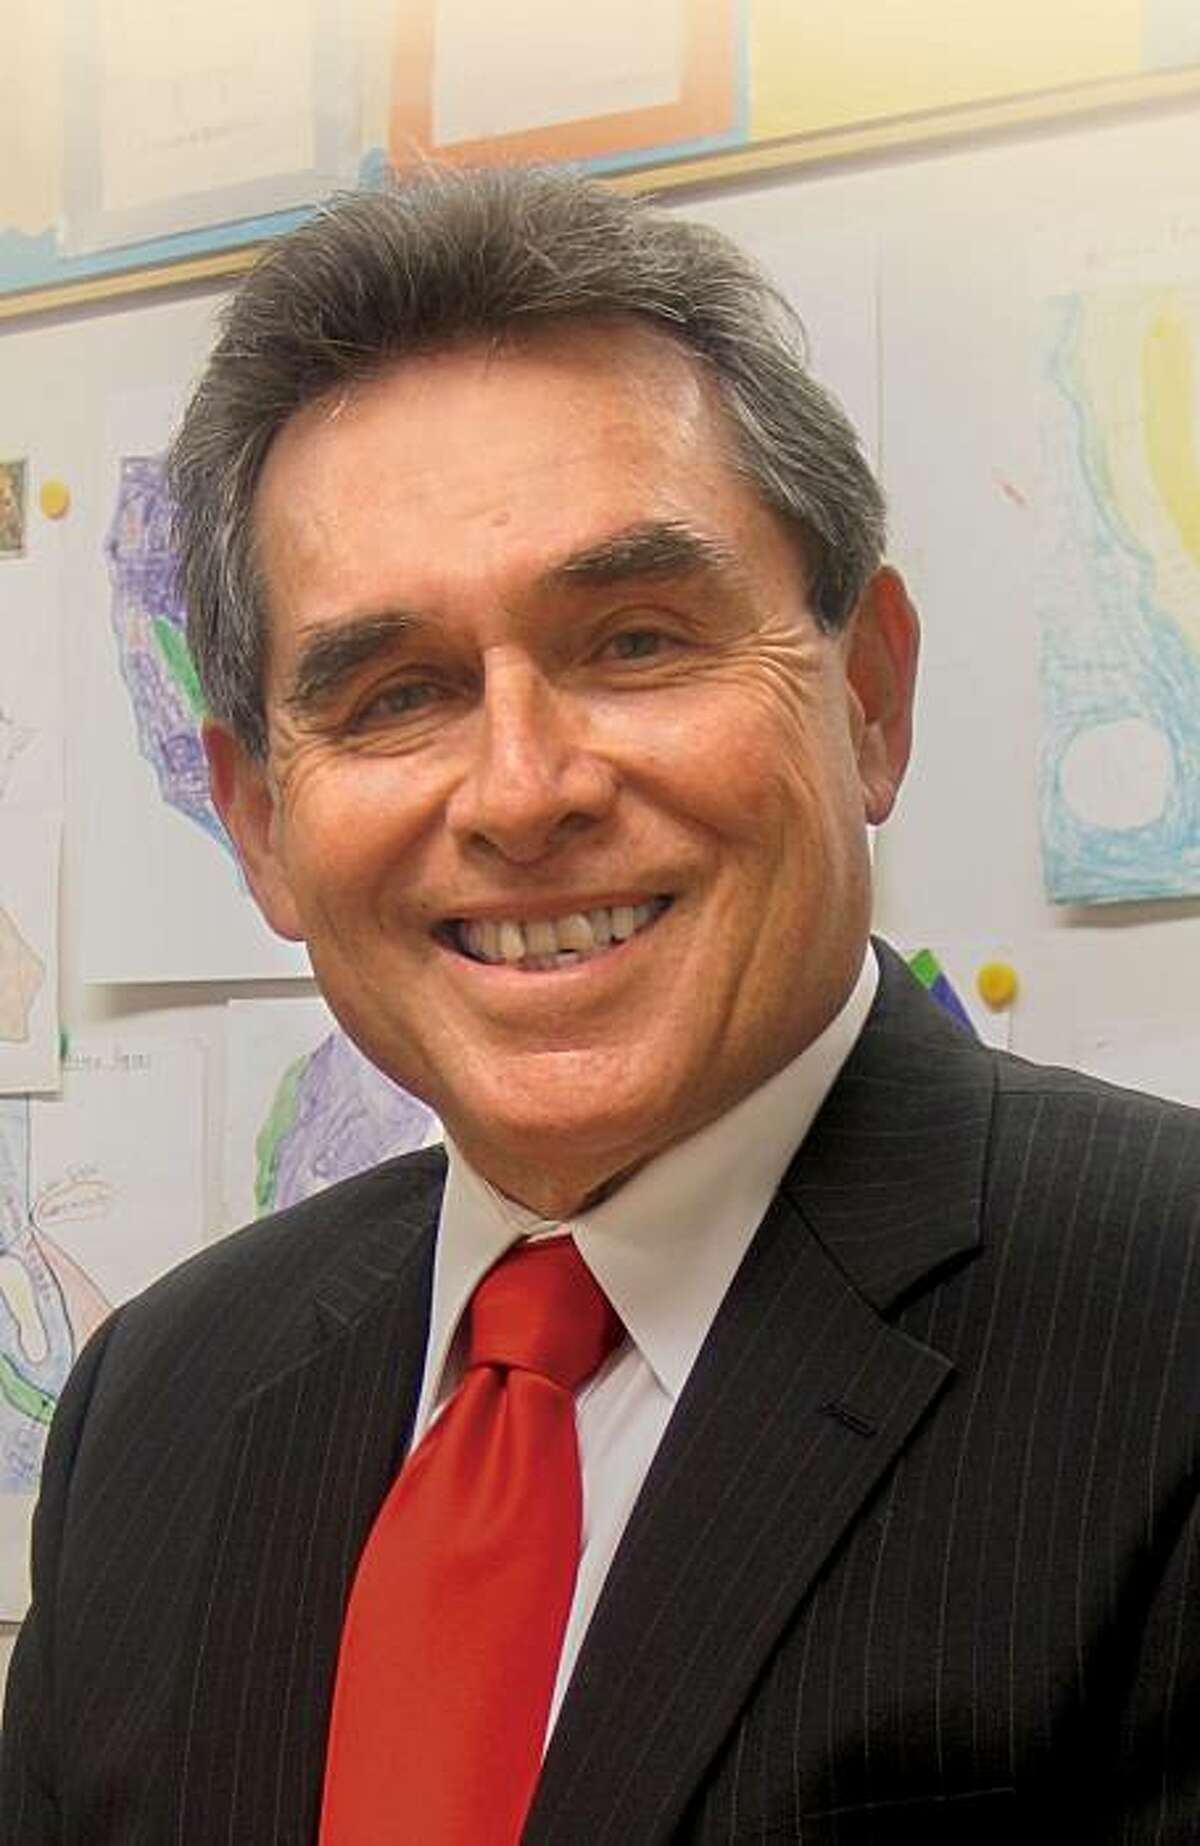 Larry Aceves, candidate for superintendent of public instruction